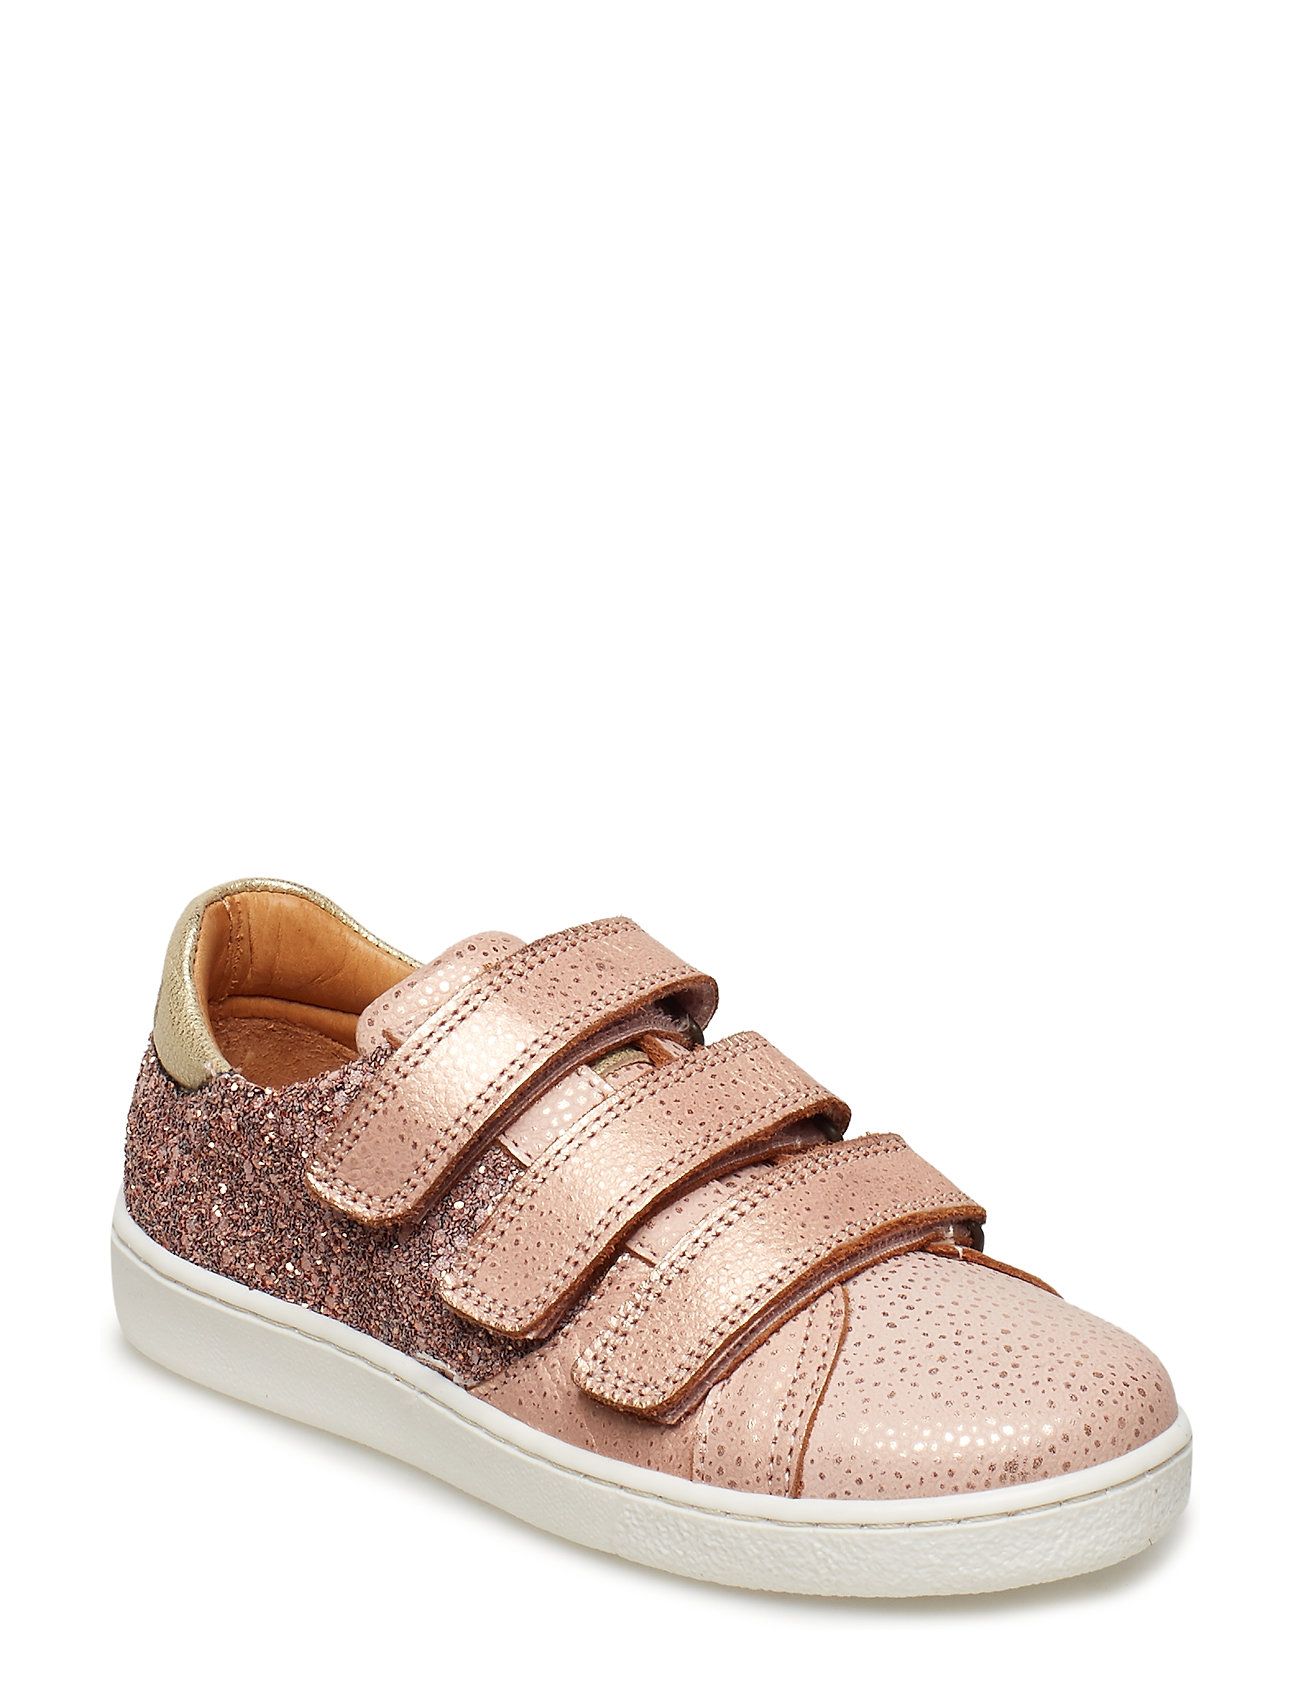 Bisgaard Velcro shoes - BLUSH